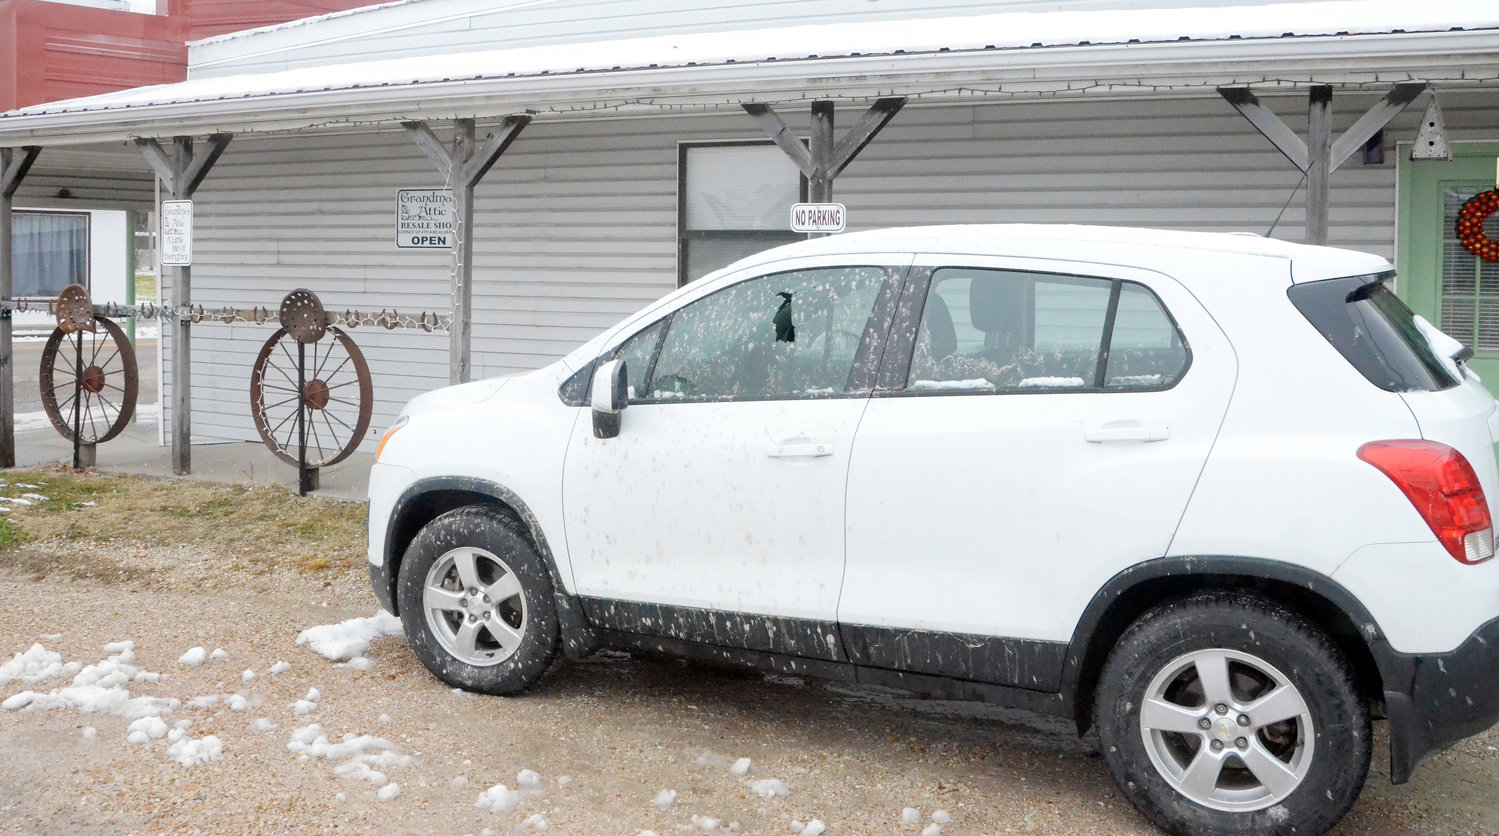 Arlene White of Belle received extensive property damage via vandalism to the side of her business, Grandma's Attic, and her personal vehicle, parked at the intersection of Alvarado Avenue and 4th Street, on Saturday night following a winter storm.